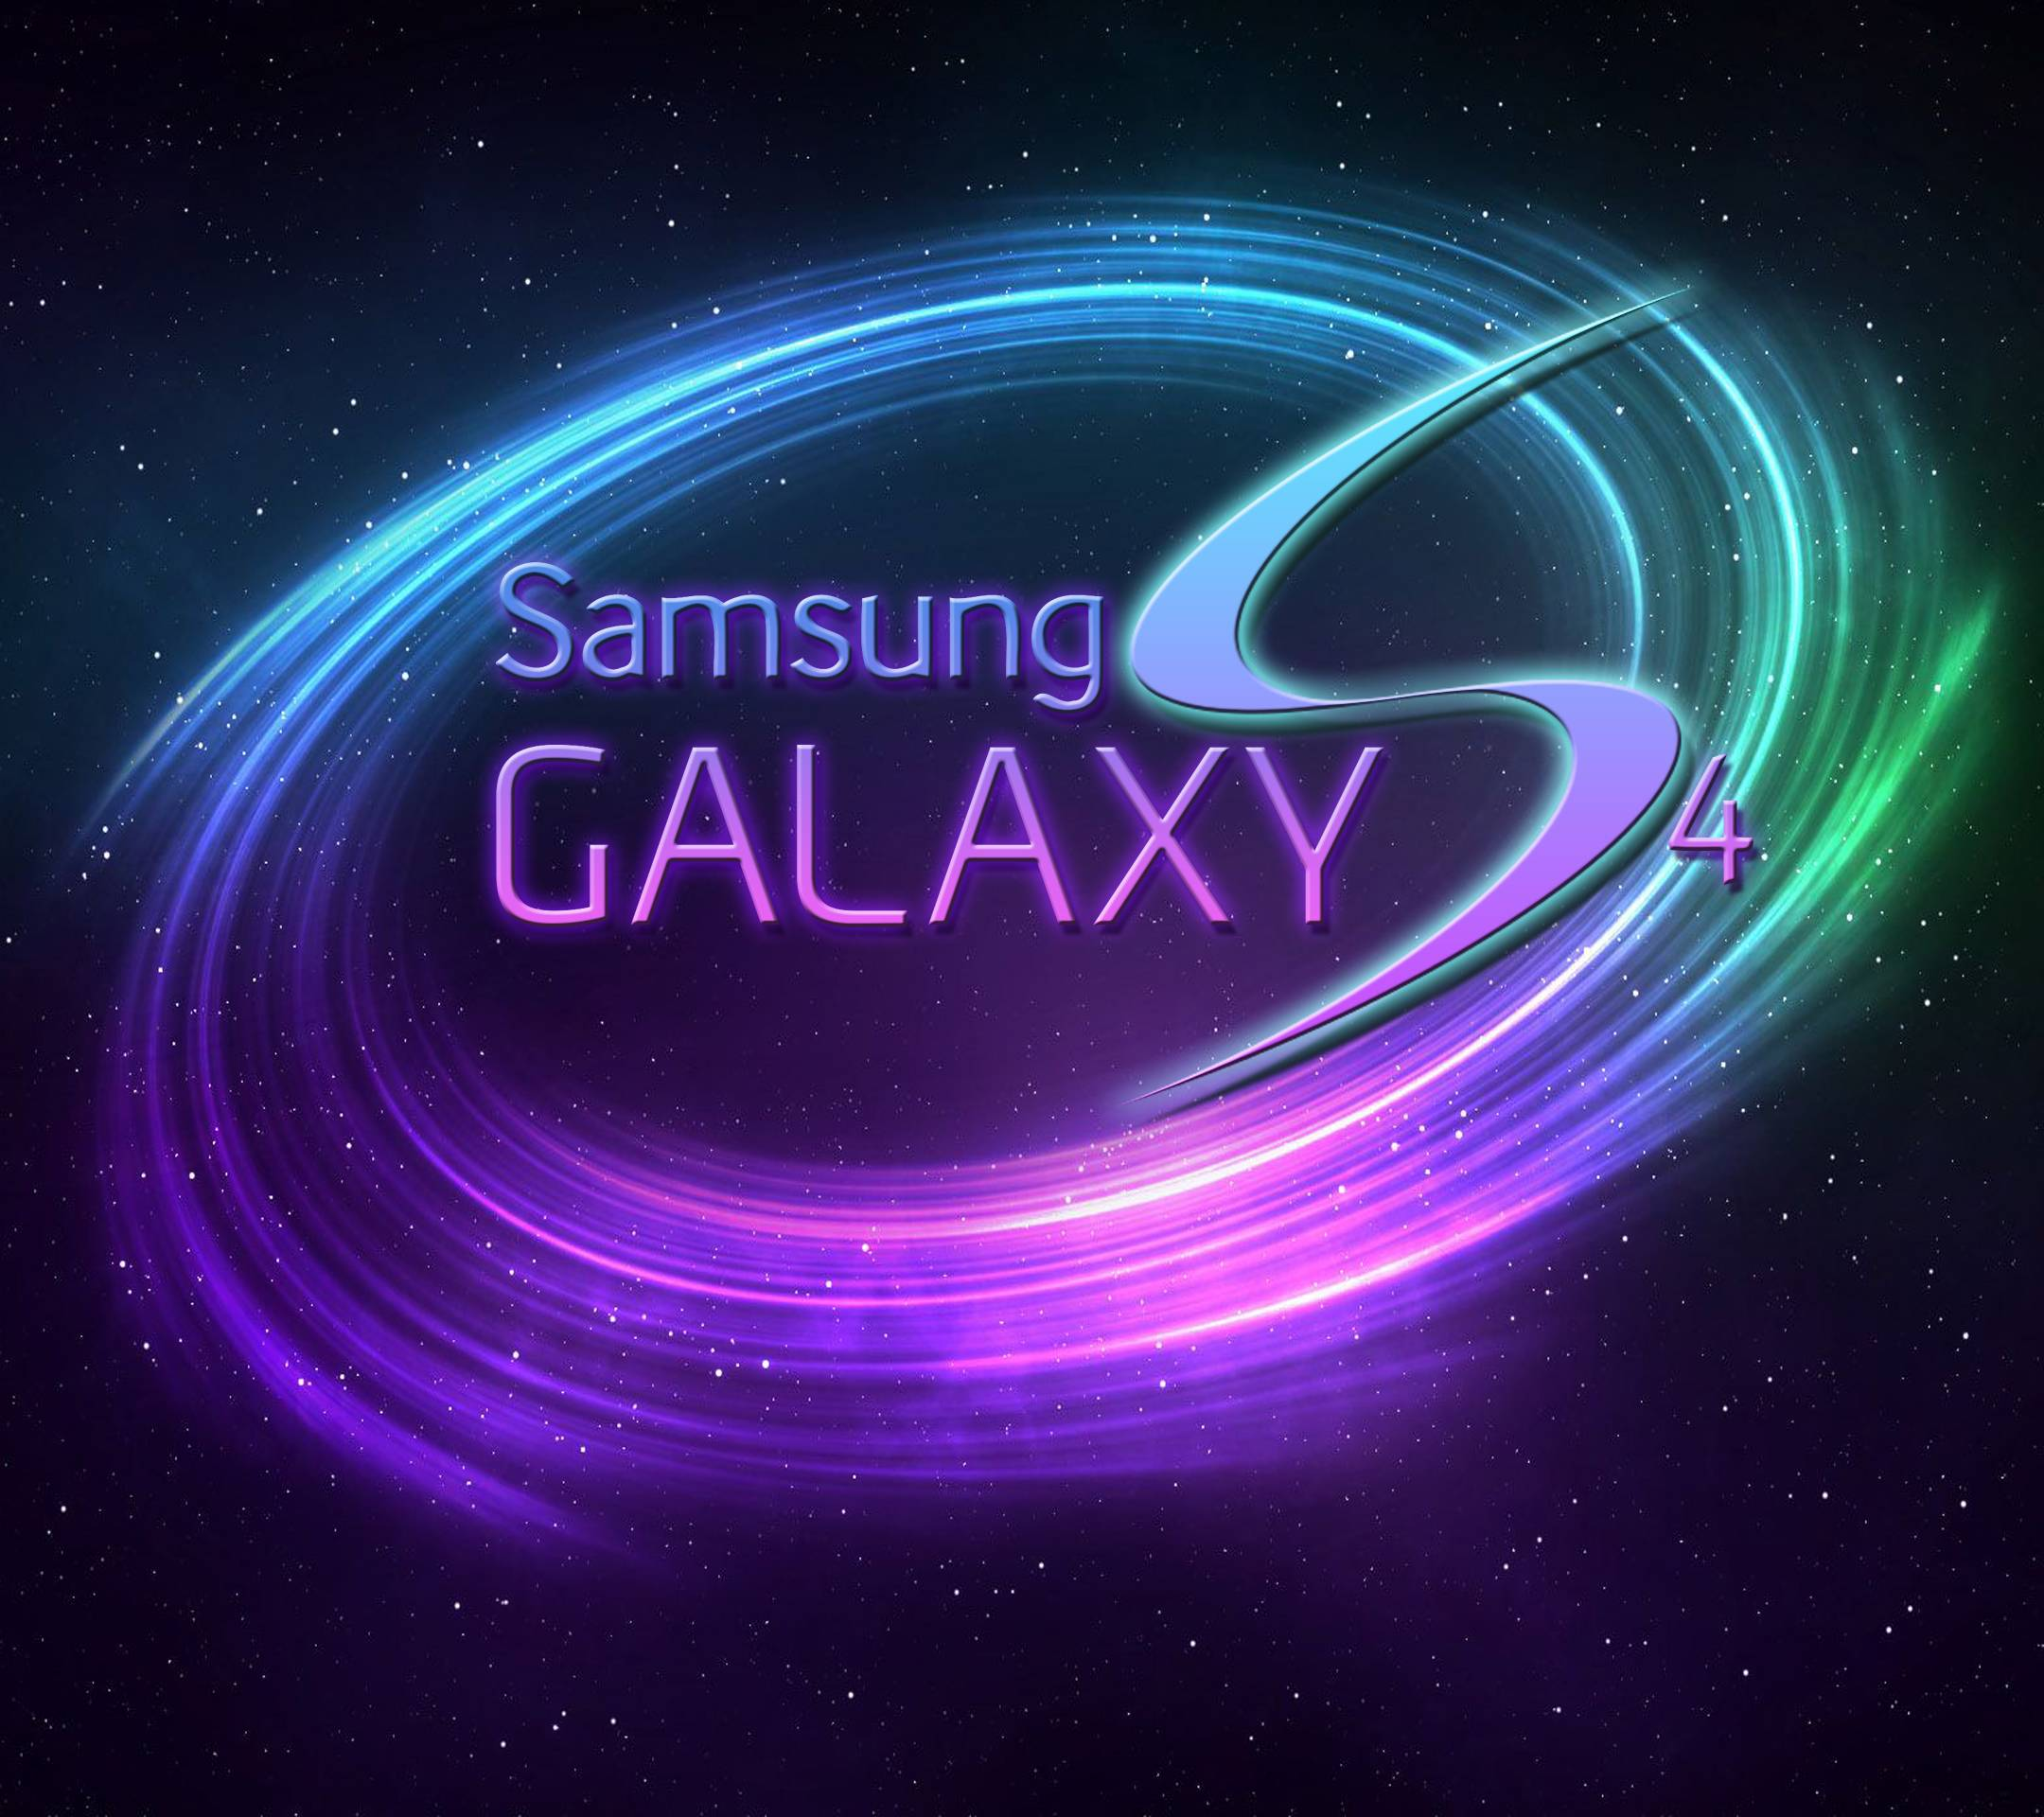 Samsung Logo Wallpapers 2160x1920